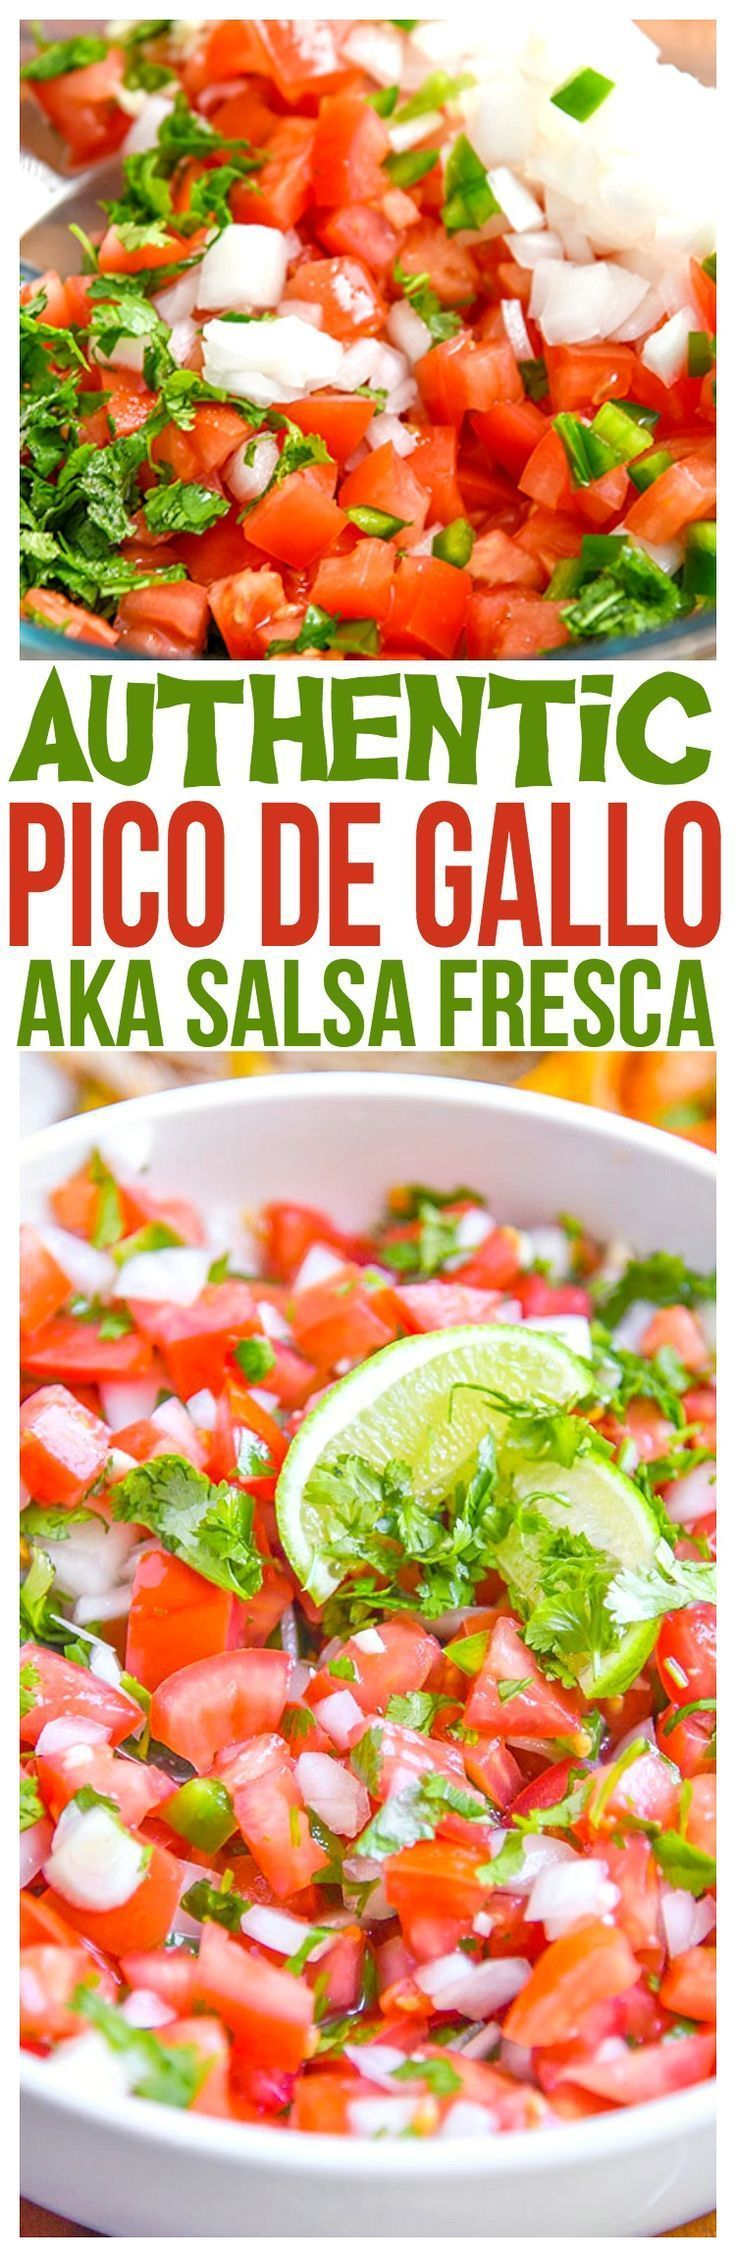 Authentic Pico de Gallo Recipe - By far the best pico de gallo recipe we've made. A fresh Salsa Fresca recipe for tacos, fajitas, and even with chips with fresh pico. (aka salsa with fresh tomatoes)  via @CourtneysSweets